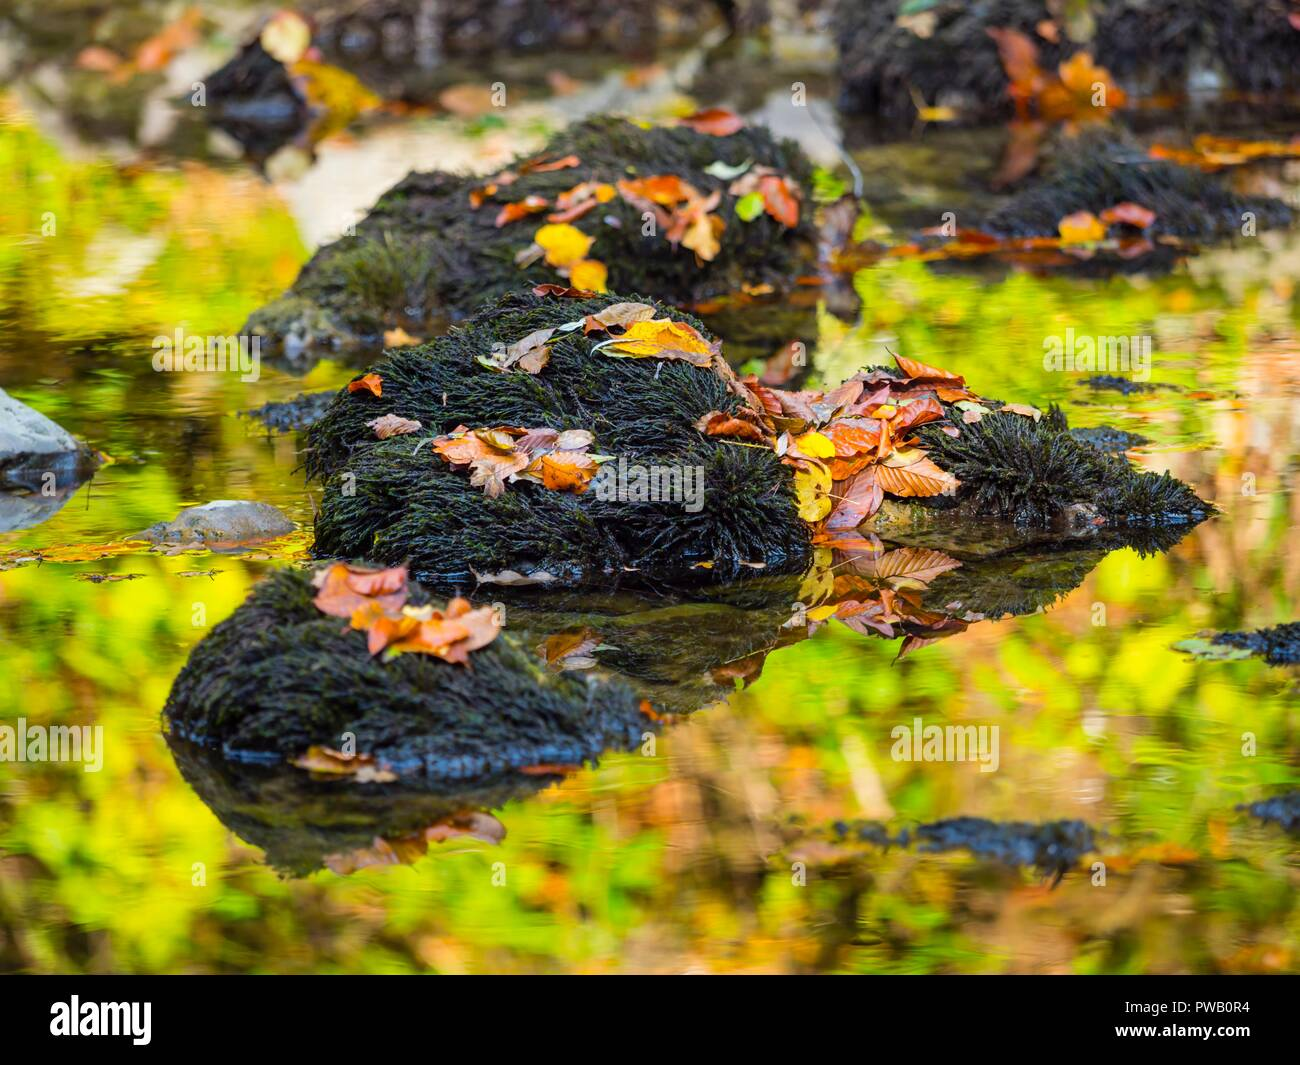 Autumn scenery in nature fallen leaves on rocks - Stock Image